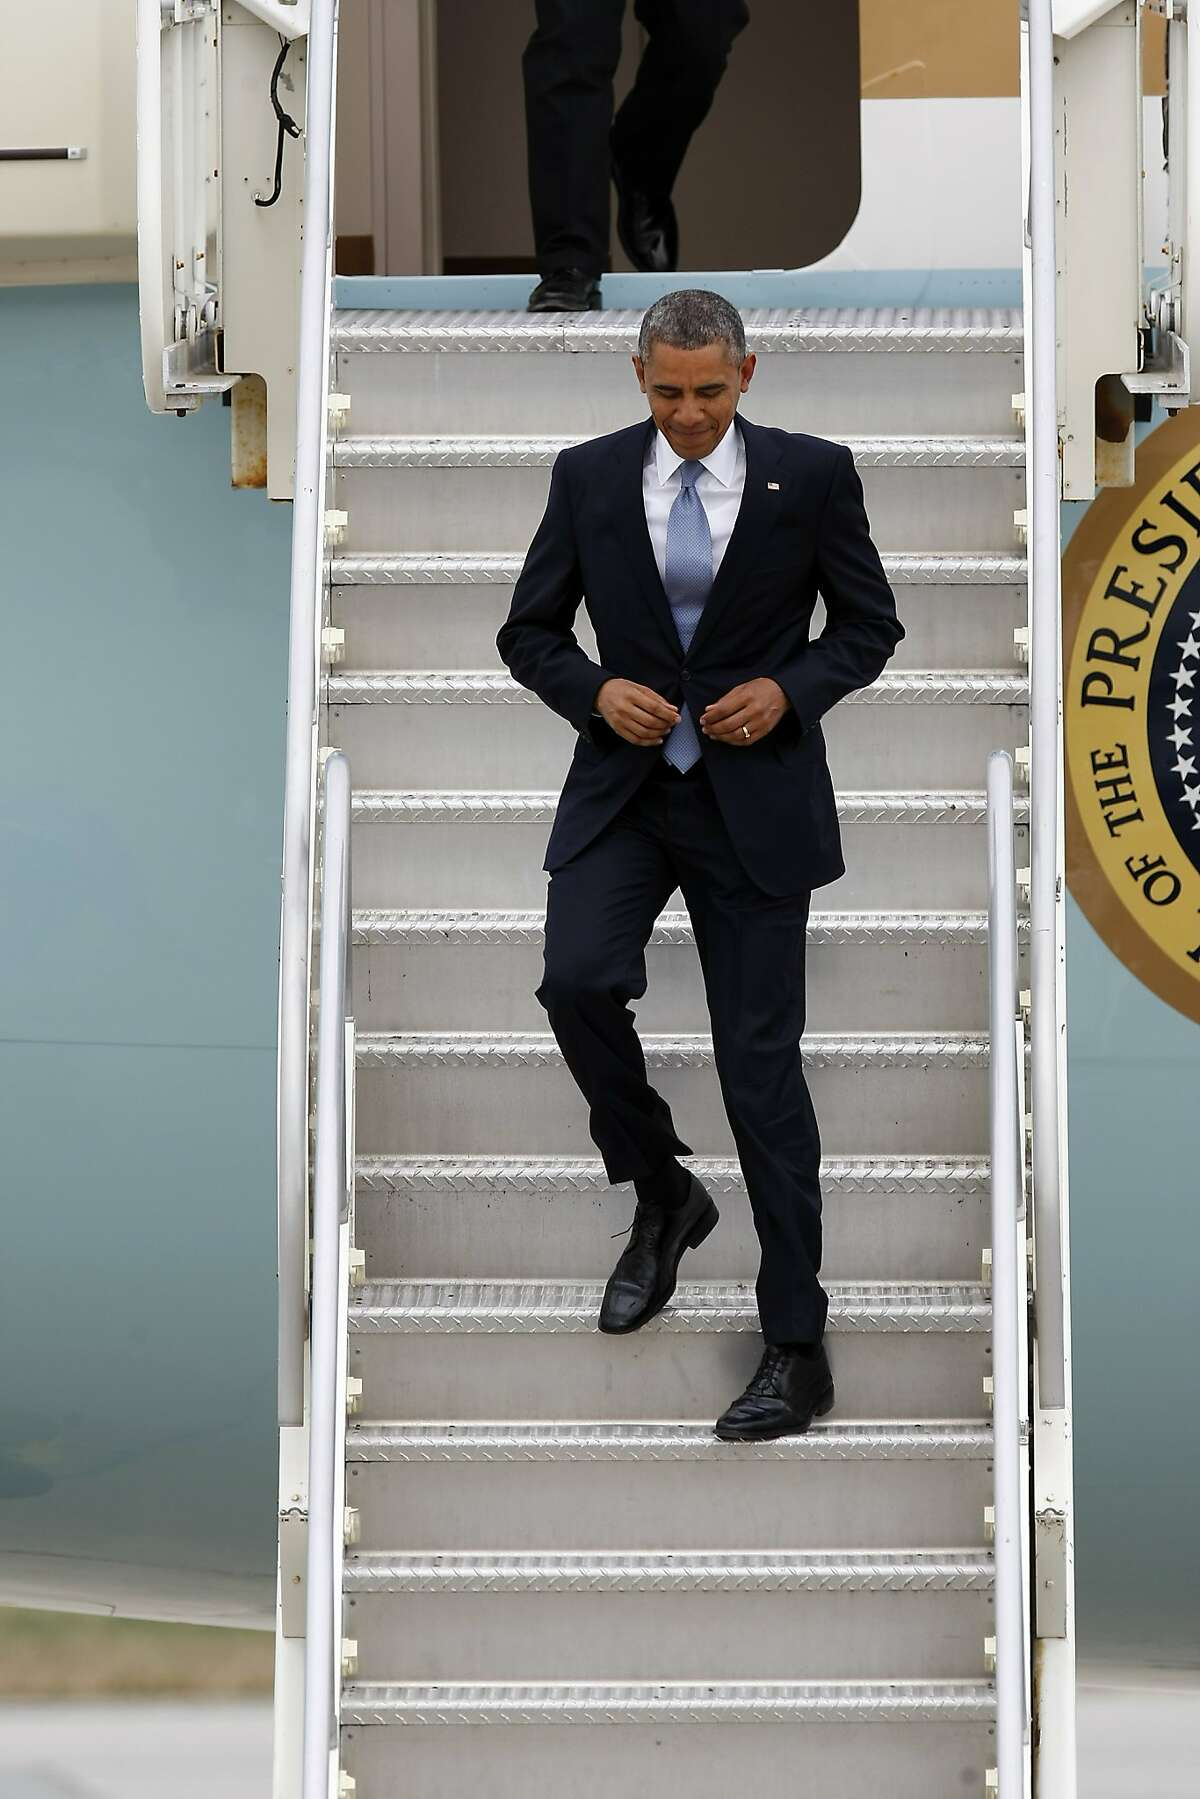 US President Barack Obama disembarks from Air Force One upon arrival at Moffett Federal Airfield in Mountain View, CA, Thursday May 8, 2014. President Obama is in the South Bay for a DNC roundtable and reception and is also speaking on the topic of energy efficiency at a local Walmart.